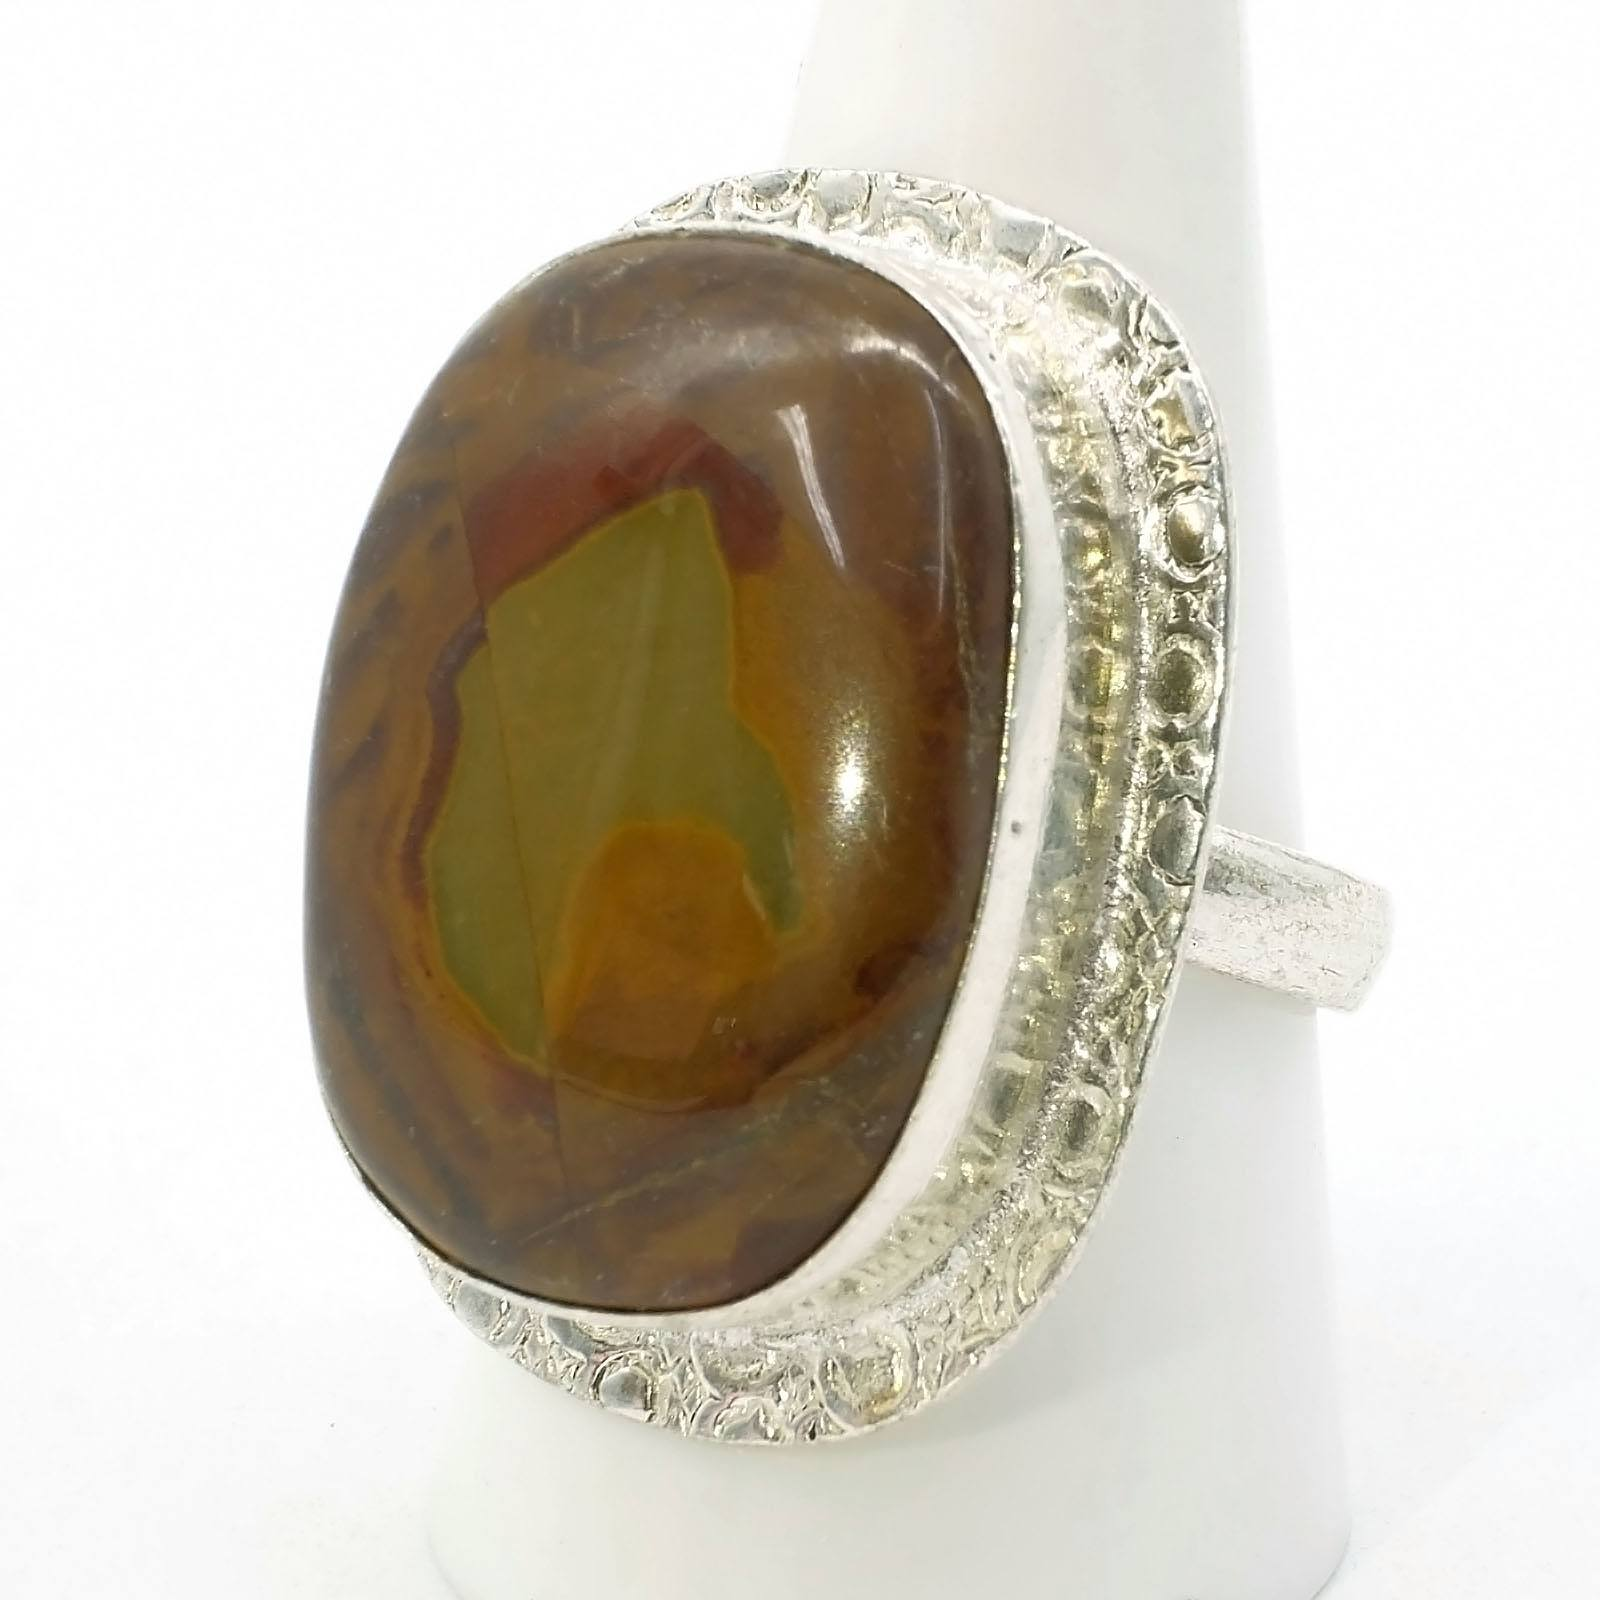 'Sterling Silver Ring with Large Cabochon of Agate'